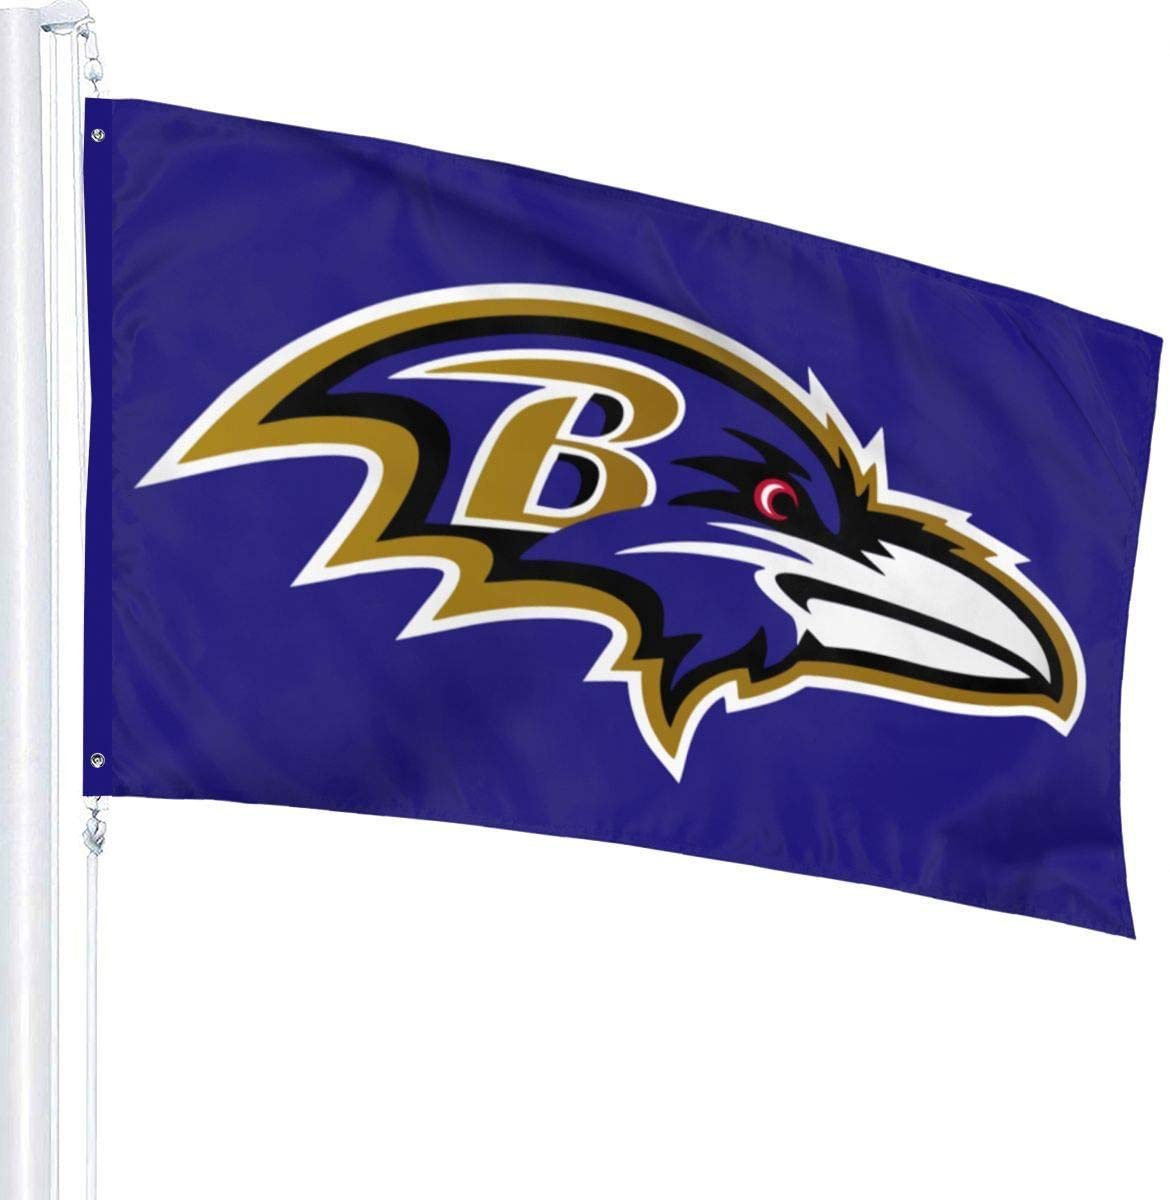 N/N Design Washington Football Single Sided Banner Indoor and Outdoor Sports Flag with Grommets 3X5 FT (Washington)